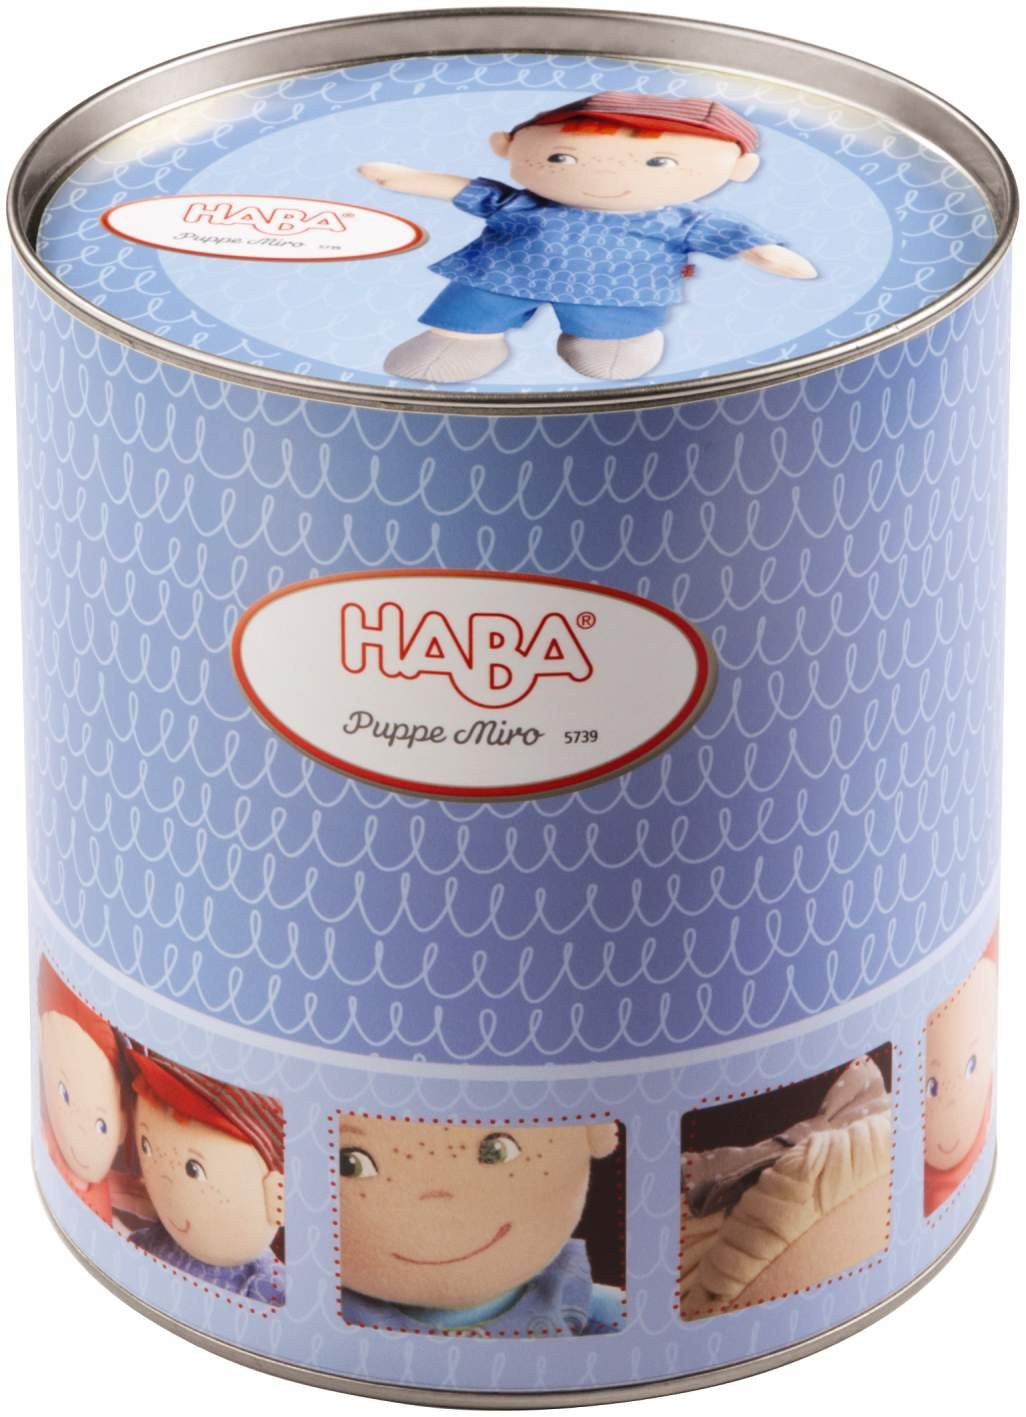 HABA Soft Doll Miro 8 First Baby Boy Doll with Red Hair for Ages 6 Months and Up 5739